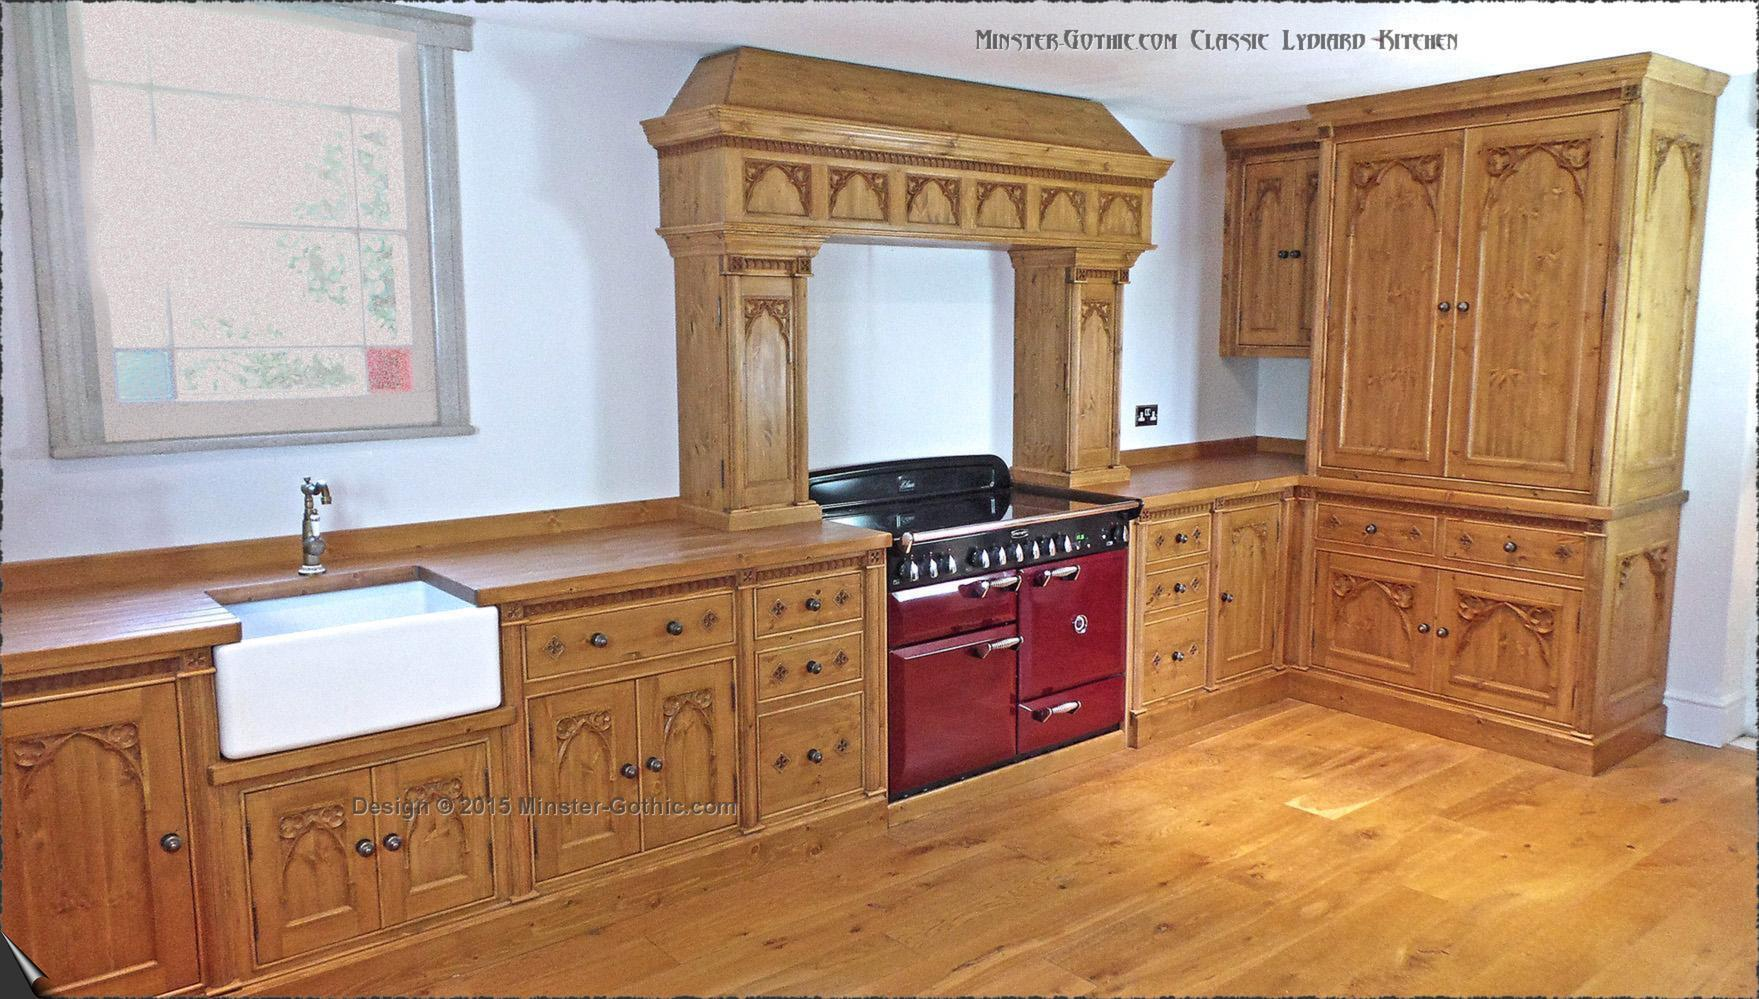 Minster Gothic Classic \ Lydiard\  Kitchen & Minster Gothic kitchens. Free-standing or fitted. - Minster Gothic ...